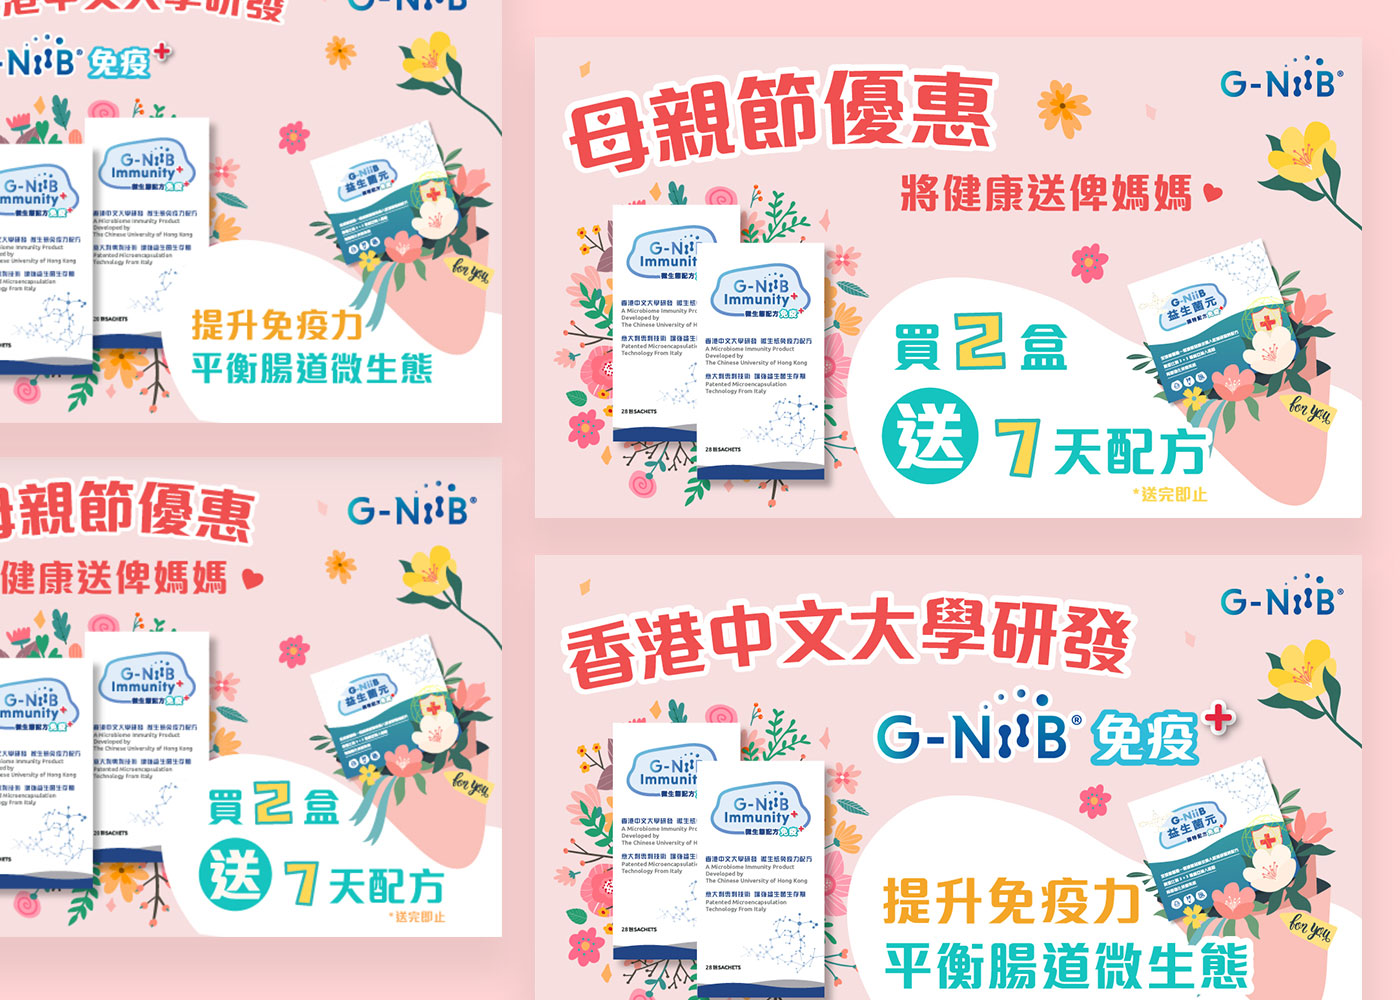 G-NiiB (Mother's day campaign)